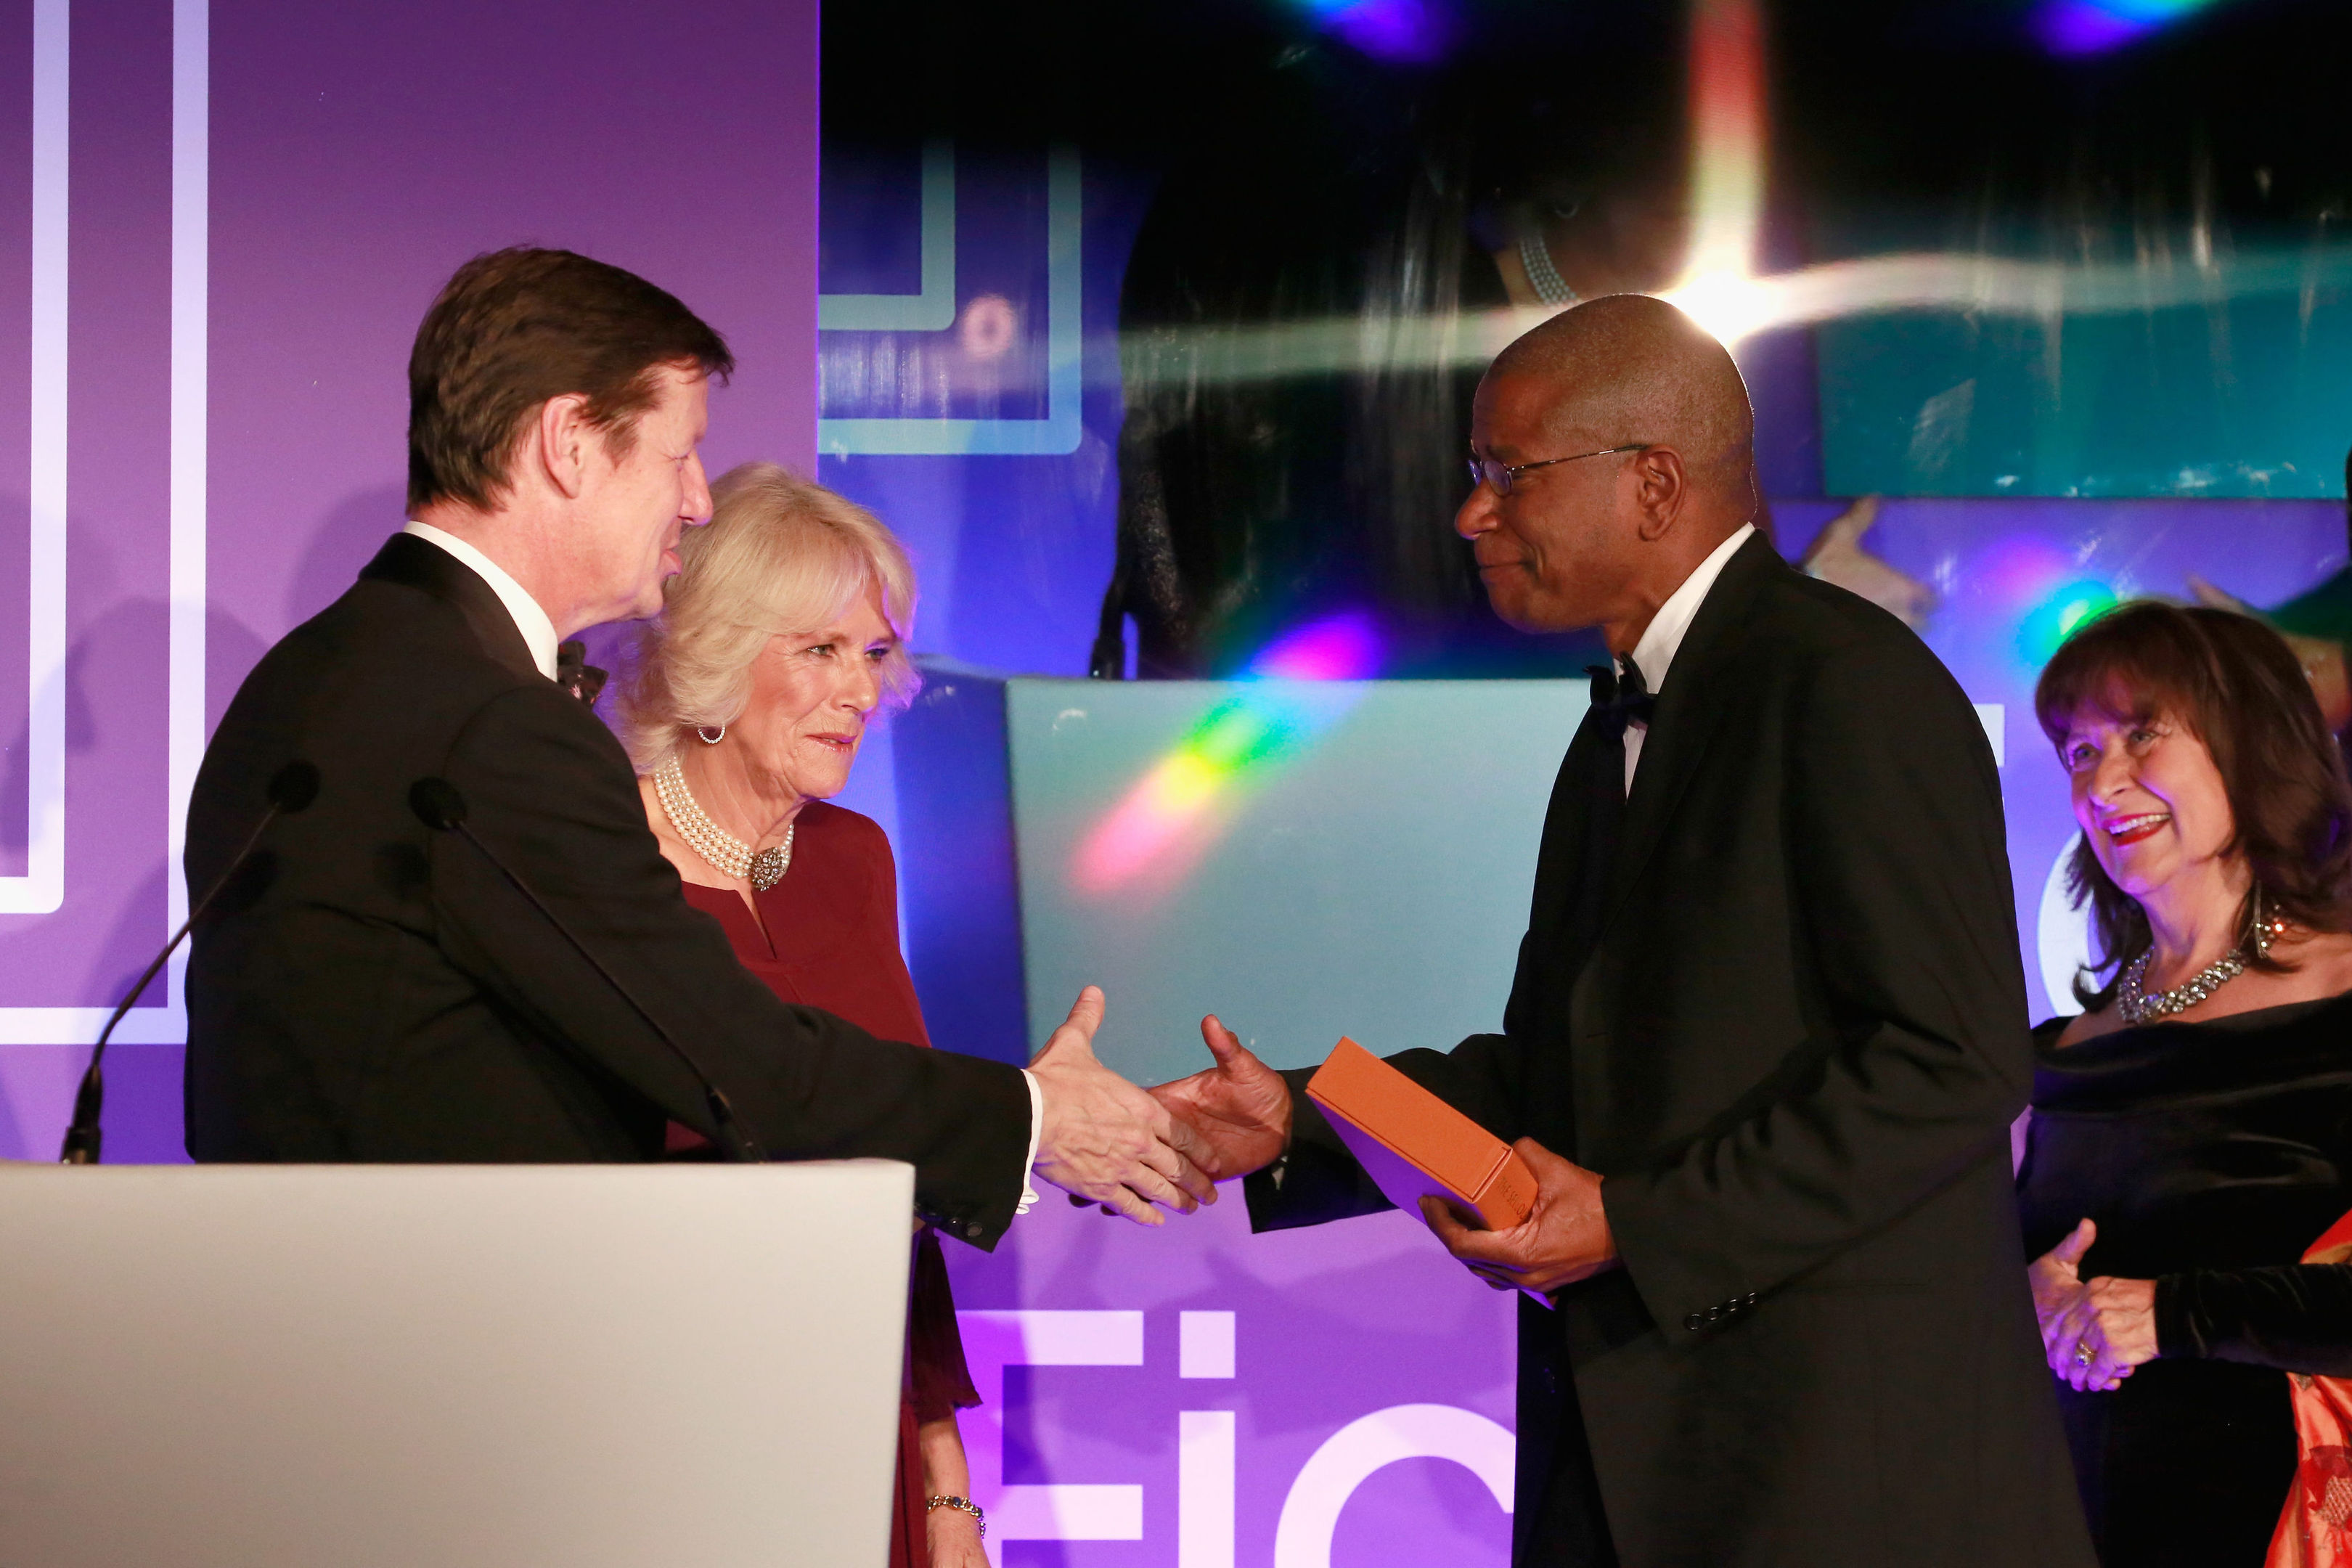 The Duchess of Cornwall presents Paul Beatty with a bound copy of his book.